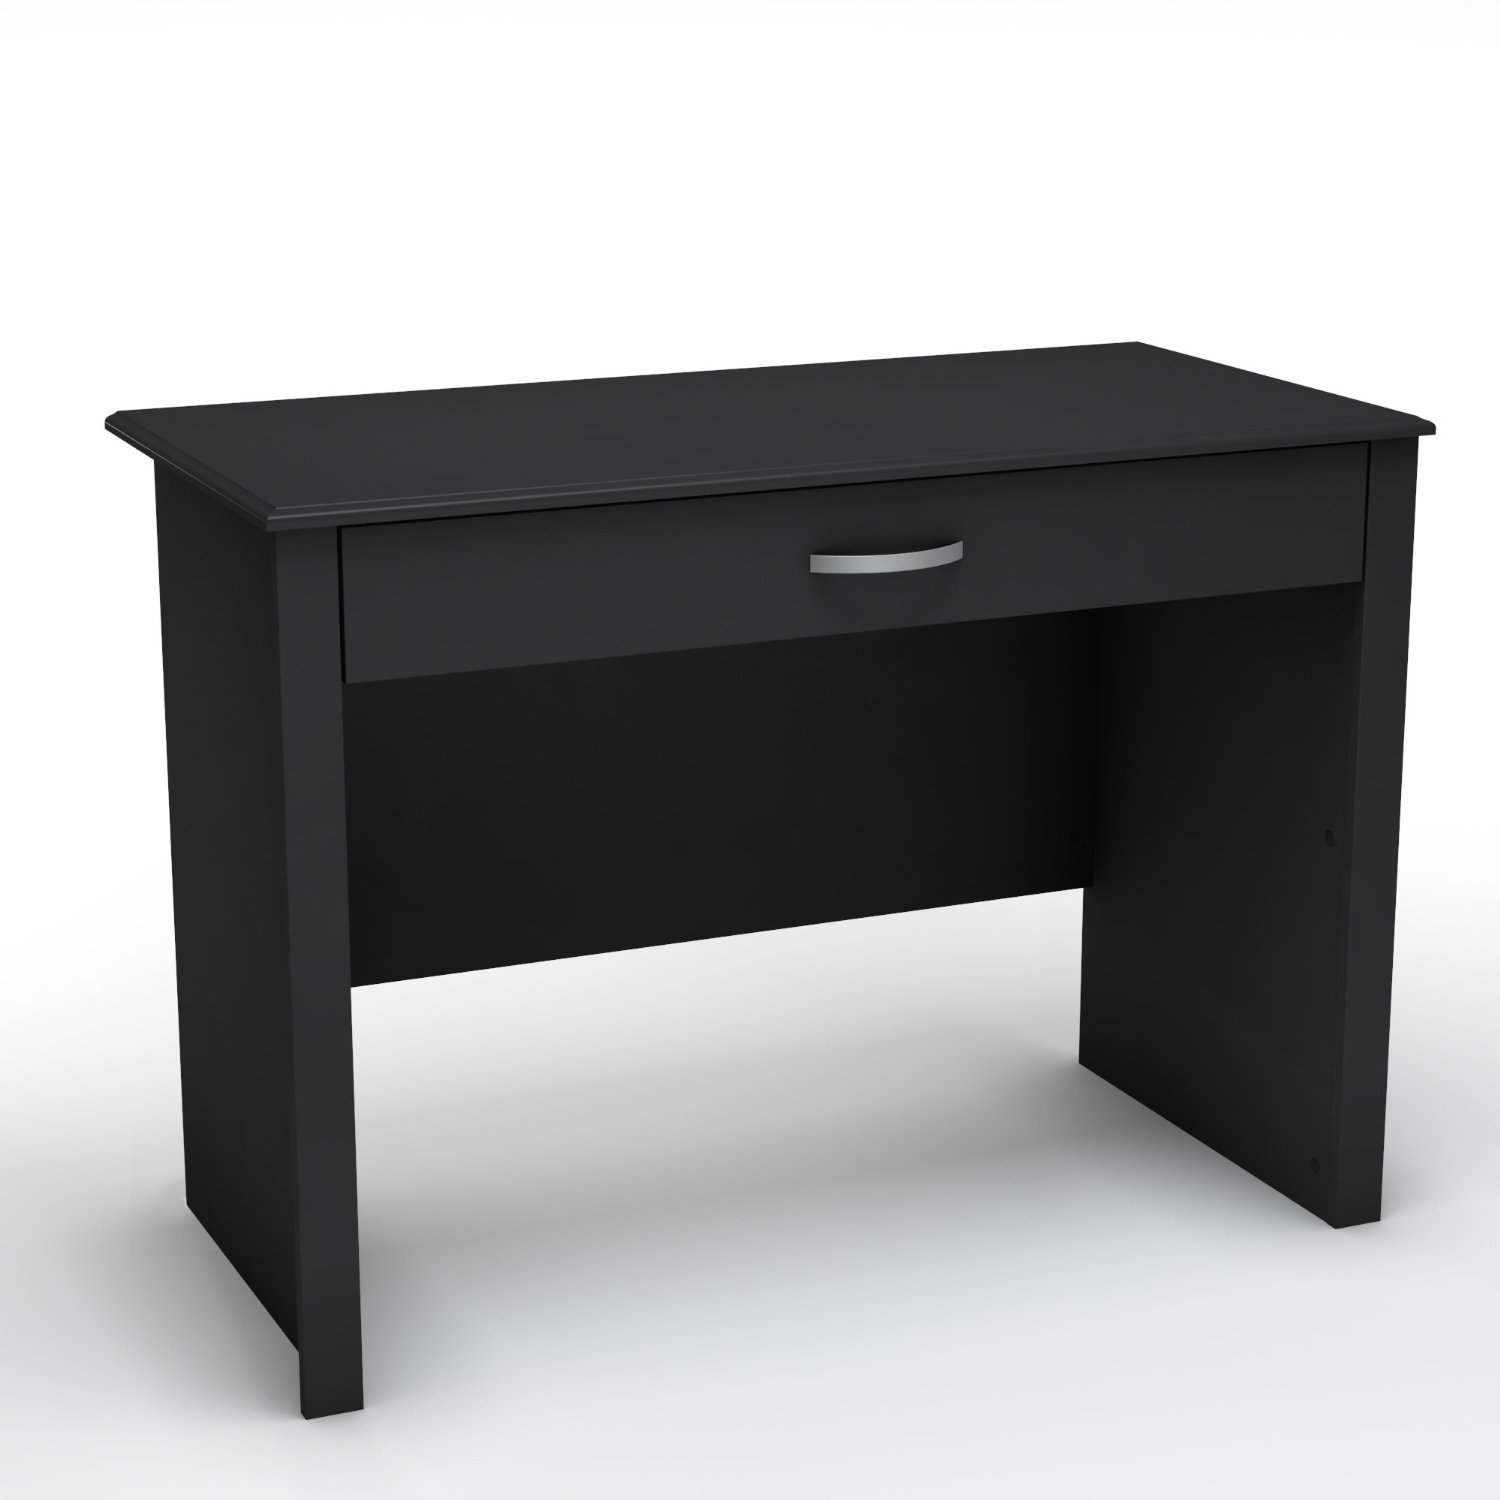 This Black Laptop Computer Desk with Keyboard Tray Drawer features an unfettered design and clean shapes to give the home office a stylized minimalist look. The work surface of this desk is a perfect size for laptop computers, but still large enough to accommodate desktop computers. The sliding keyboard tray is a practical feature, and everything tucks away neatly thanks to the tray's folding front. It is made of recycled CARB compliant particle panels. Metal glides.